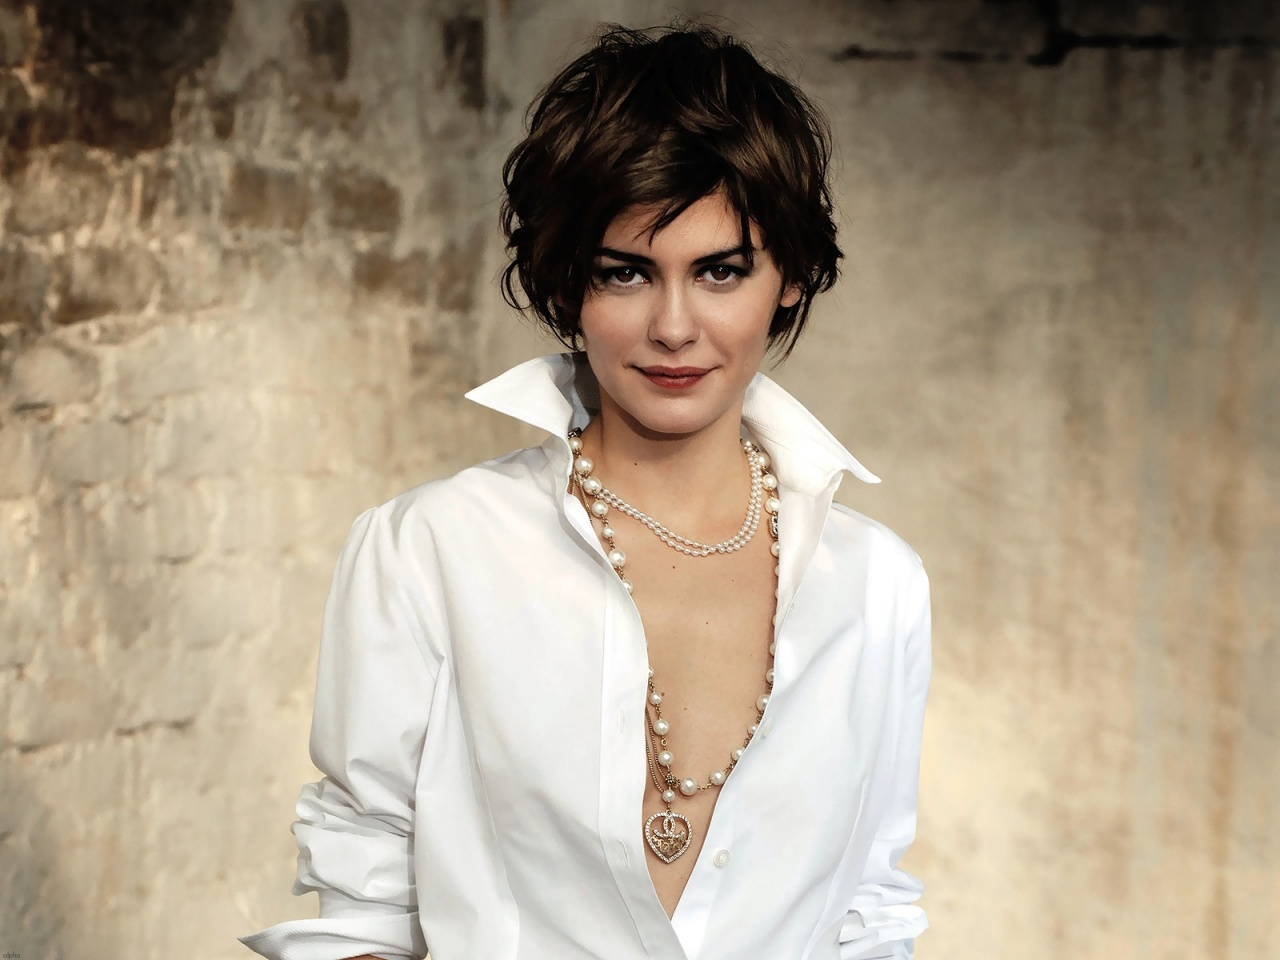 audrey tautou wdwaudrey tautou 2017, audrey tautou 2016, audrey tautou films, audrey tautou биография, audrey tautou amelie, audrey tautou style, audrey tautou wiki, audrey tautou tumblr, audrey tautou hors de prix, audrey tautou gif, audrey tautou фильмы, audrey tautou street style, audrey tautou young, audrey tautou la biographie, audrey tautou interview, audrey tautou wiki fr, audrey tautou pronunciation, audrey tautou wdw, audrey tautou filme, audrey tautou french